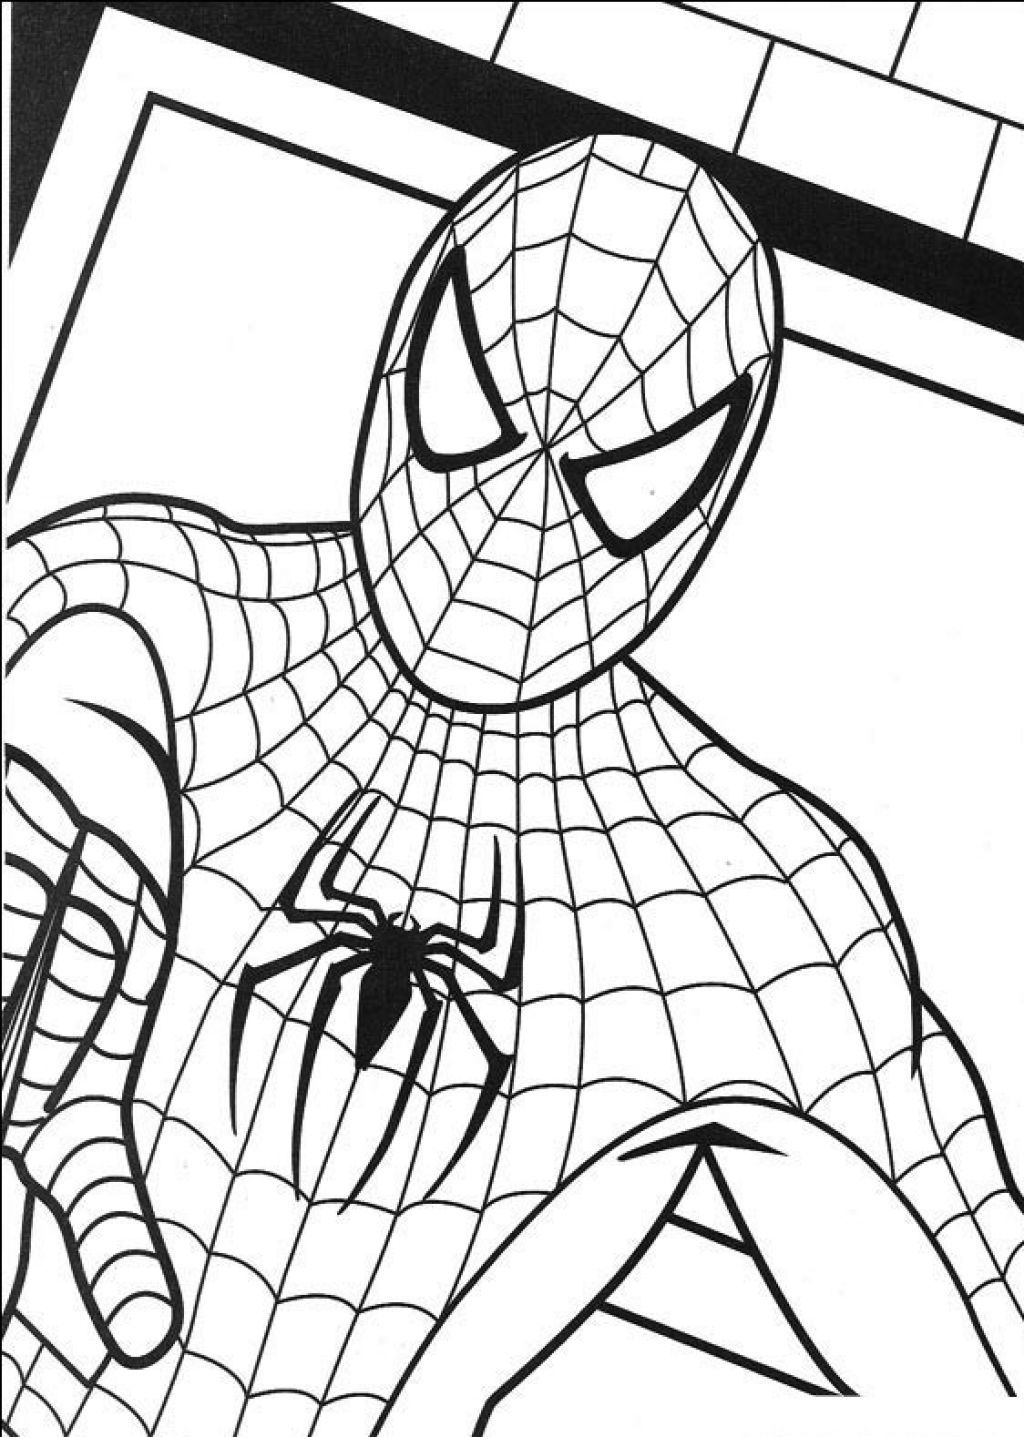 coloring spiderman drawing easy spiderman drawing easy free download on clipartmag drawing spiderman easy coloring